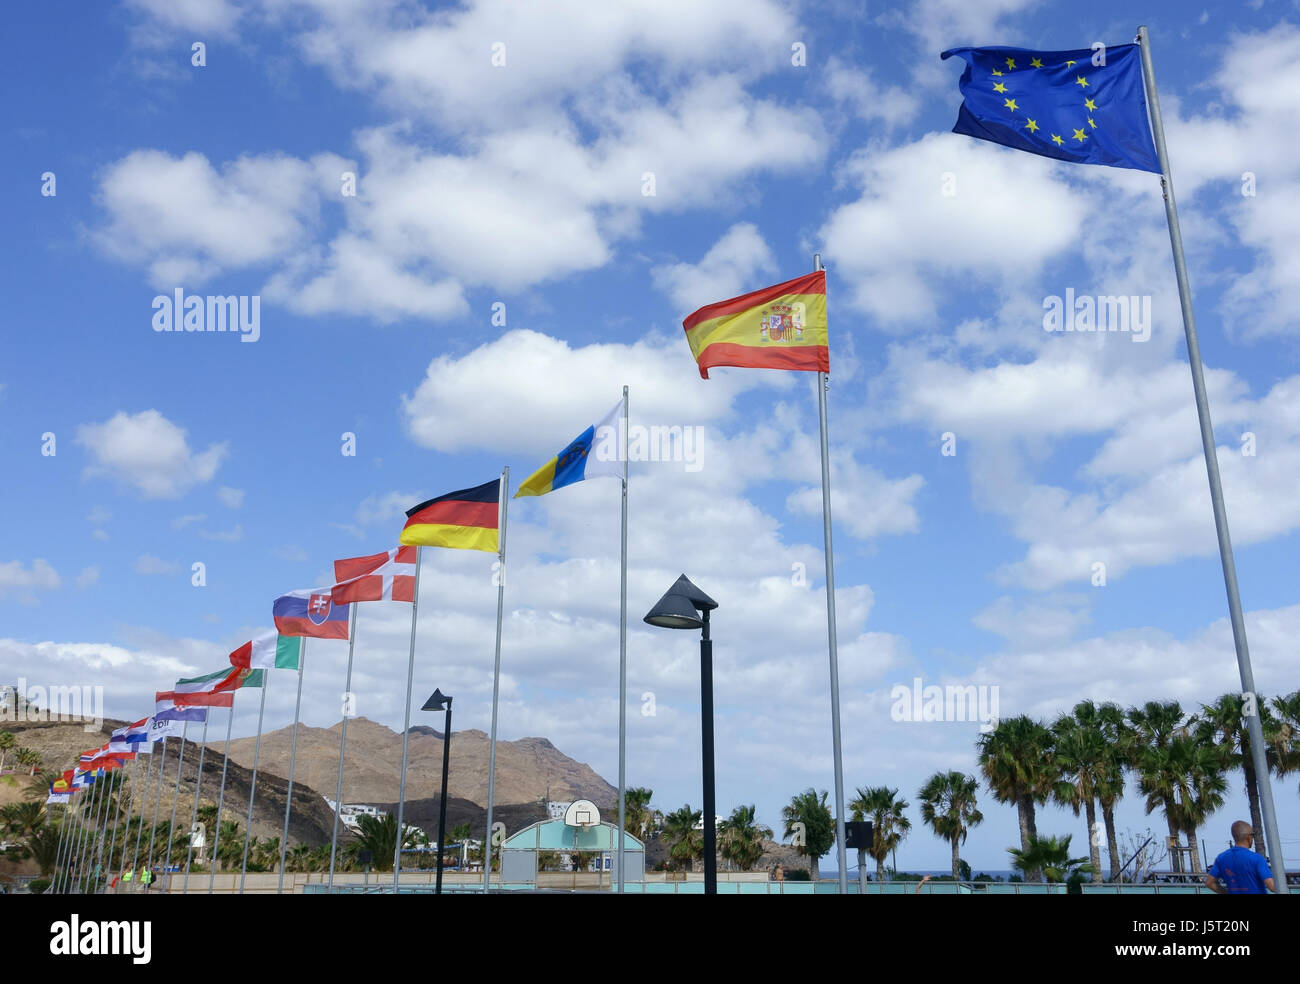 the flags of the European Union - Stock Image